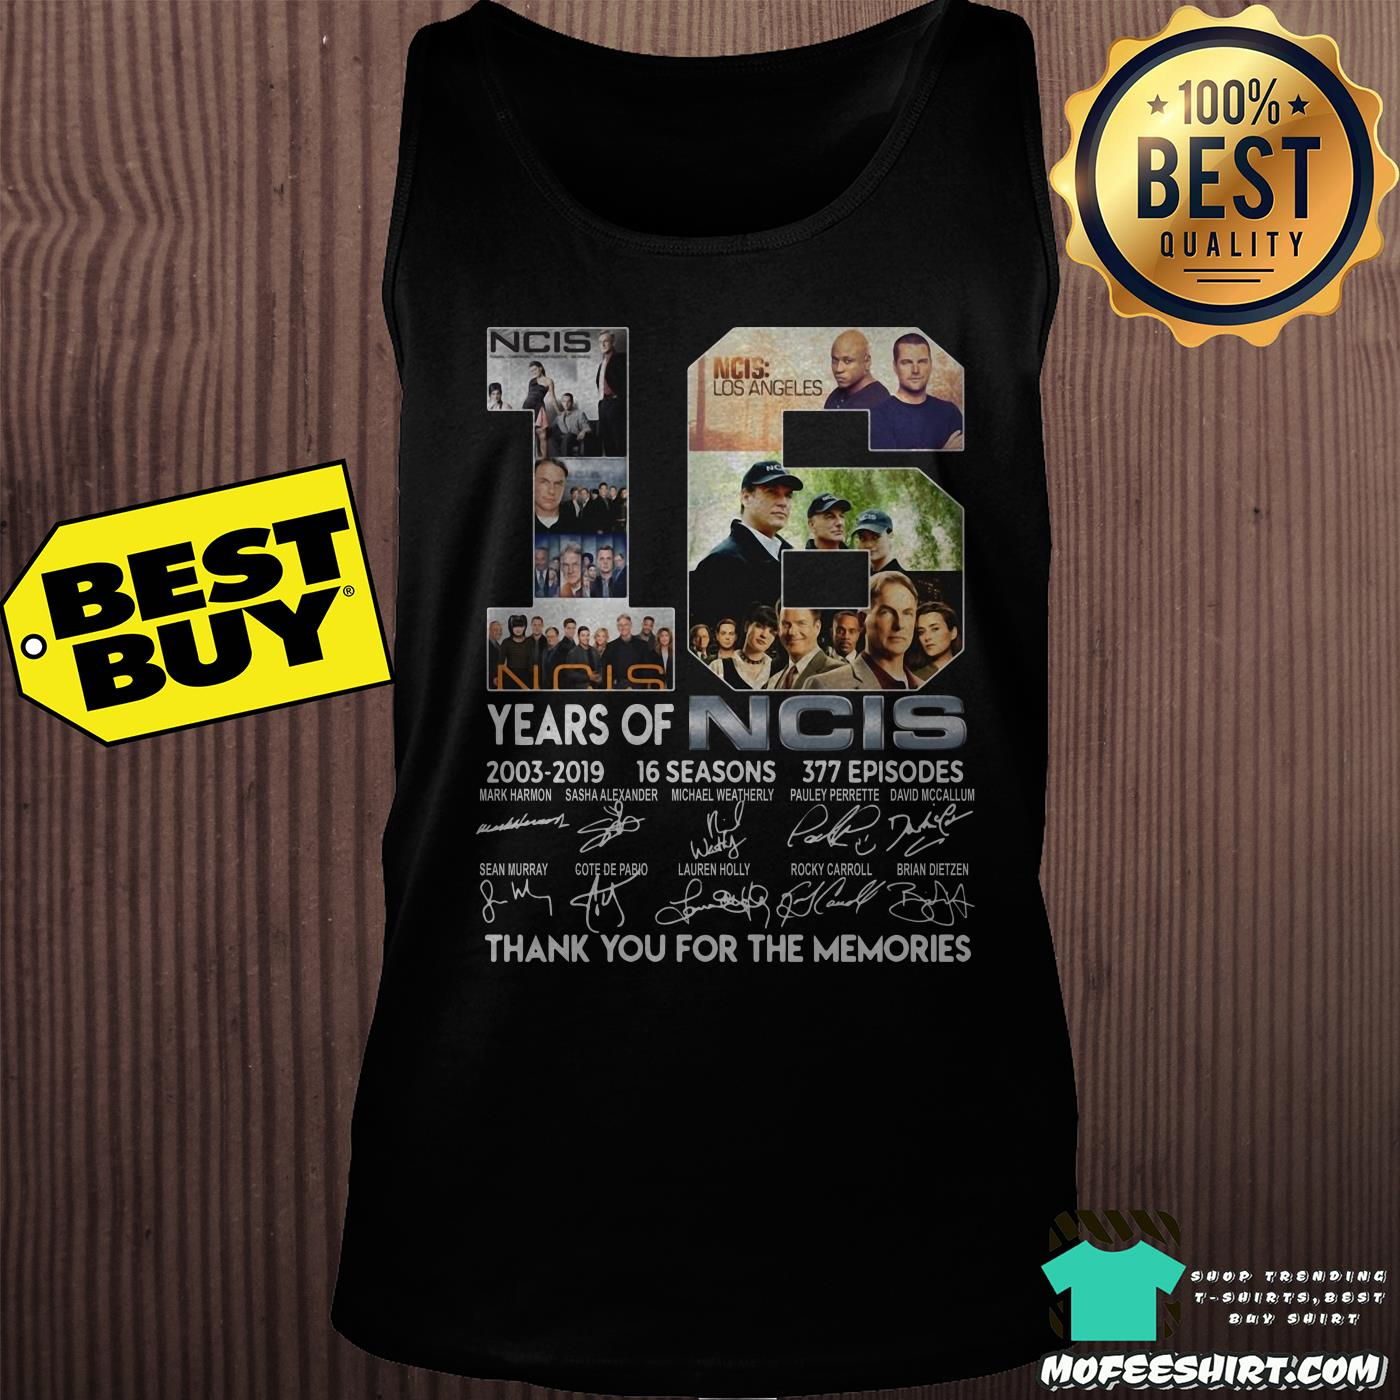 16 years of ncis 2003 2019 16 seasons 377 episodes signatures tank top - 16 years of NCIS 2003-2019 16 Seasons 377 Episodes signatures shirt